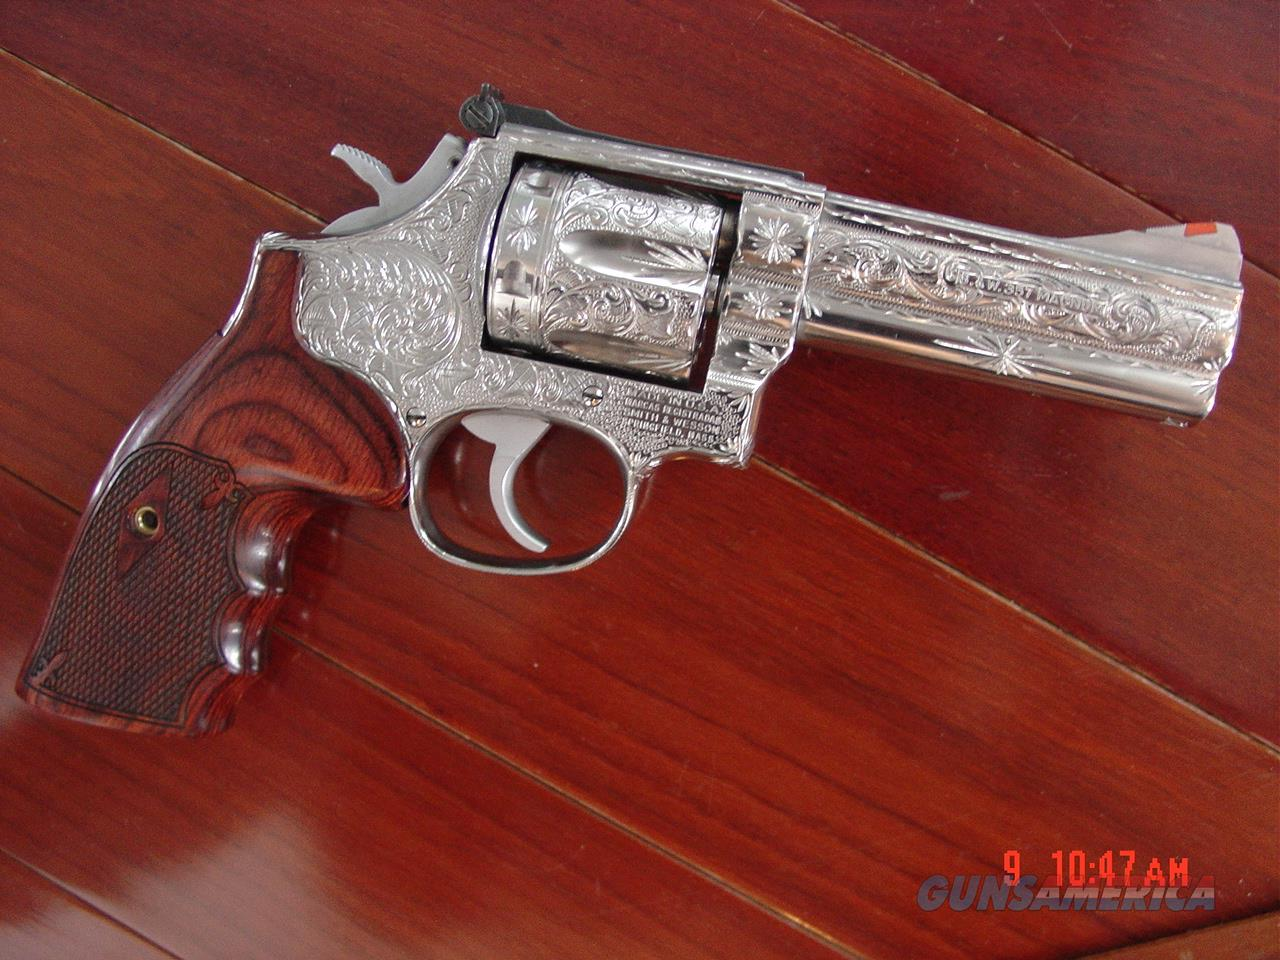 "Smith & Wesson 686,no dash,fully engraved by Flannery Engraving,& polished stainless,custom Rosewood grips,4"" barrel,357 Magnum,adj.site,box & manual,a one of a kind work of art !!  Guns > Pistols > Smith & Wesson Revolvers > Full Frame Revolver"